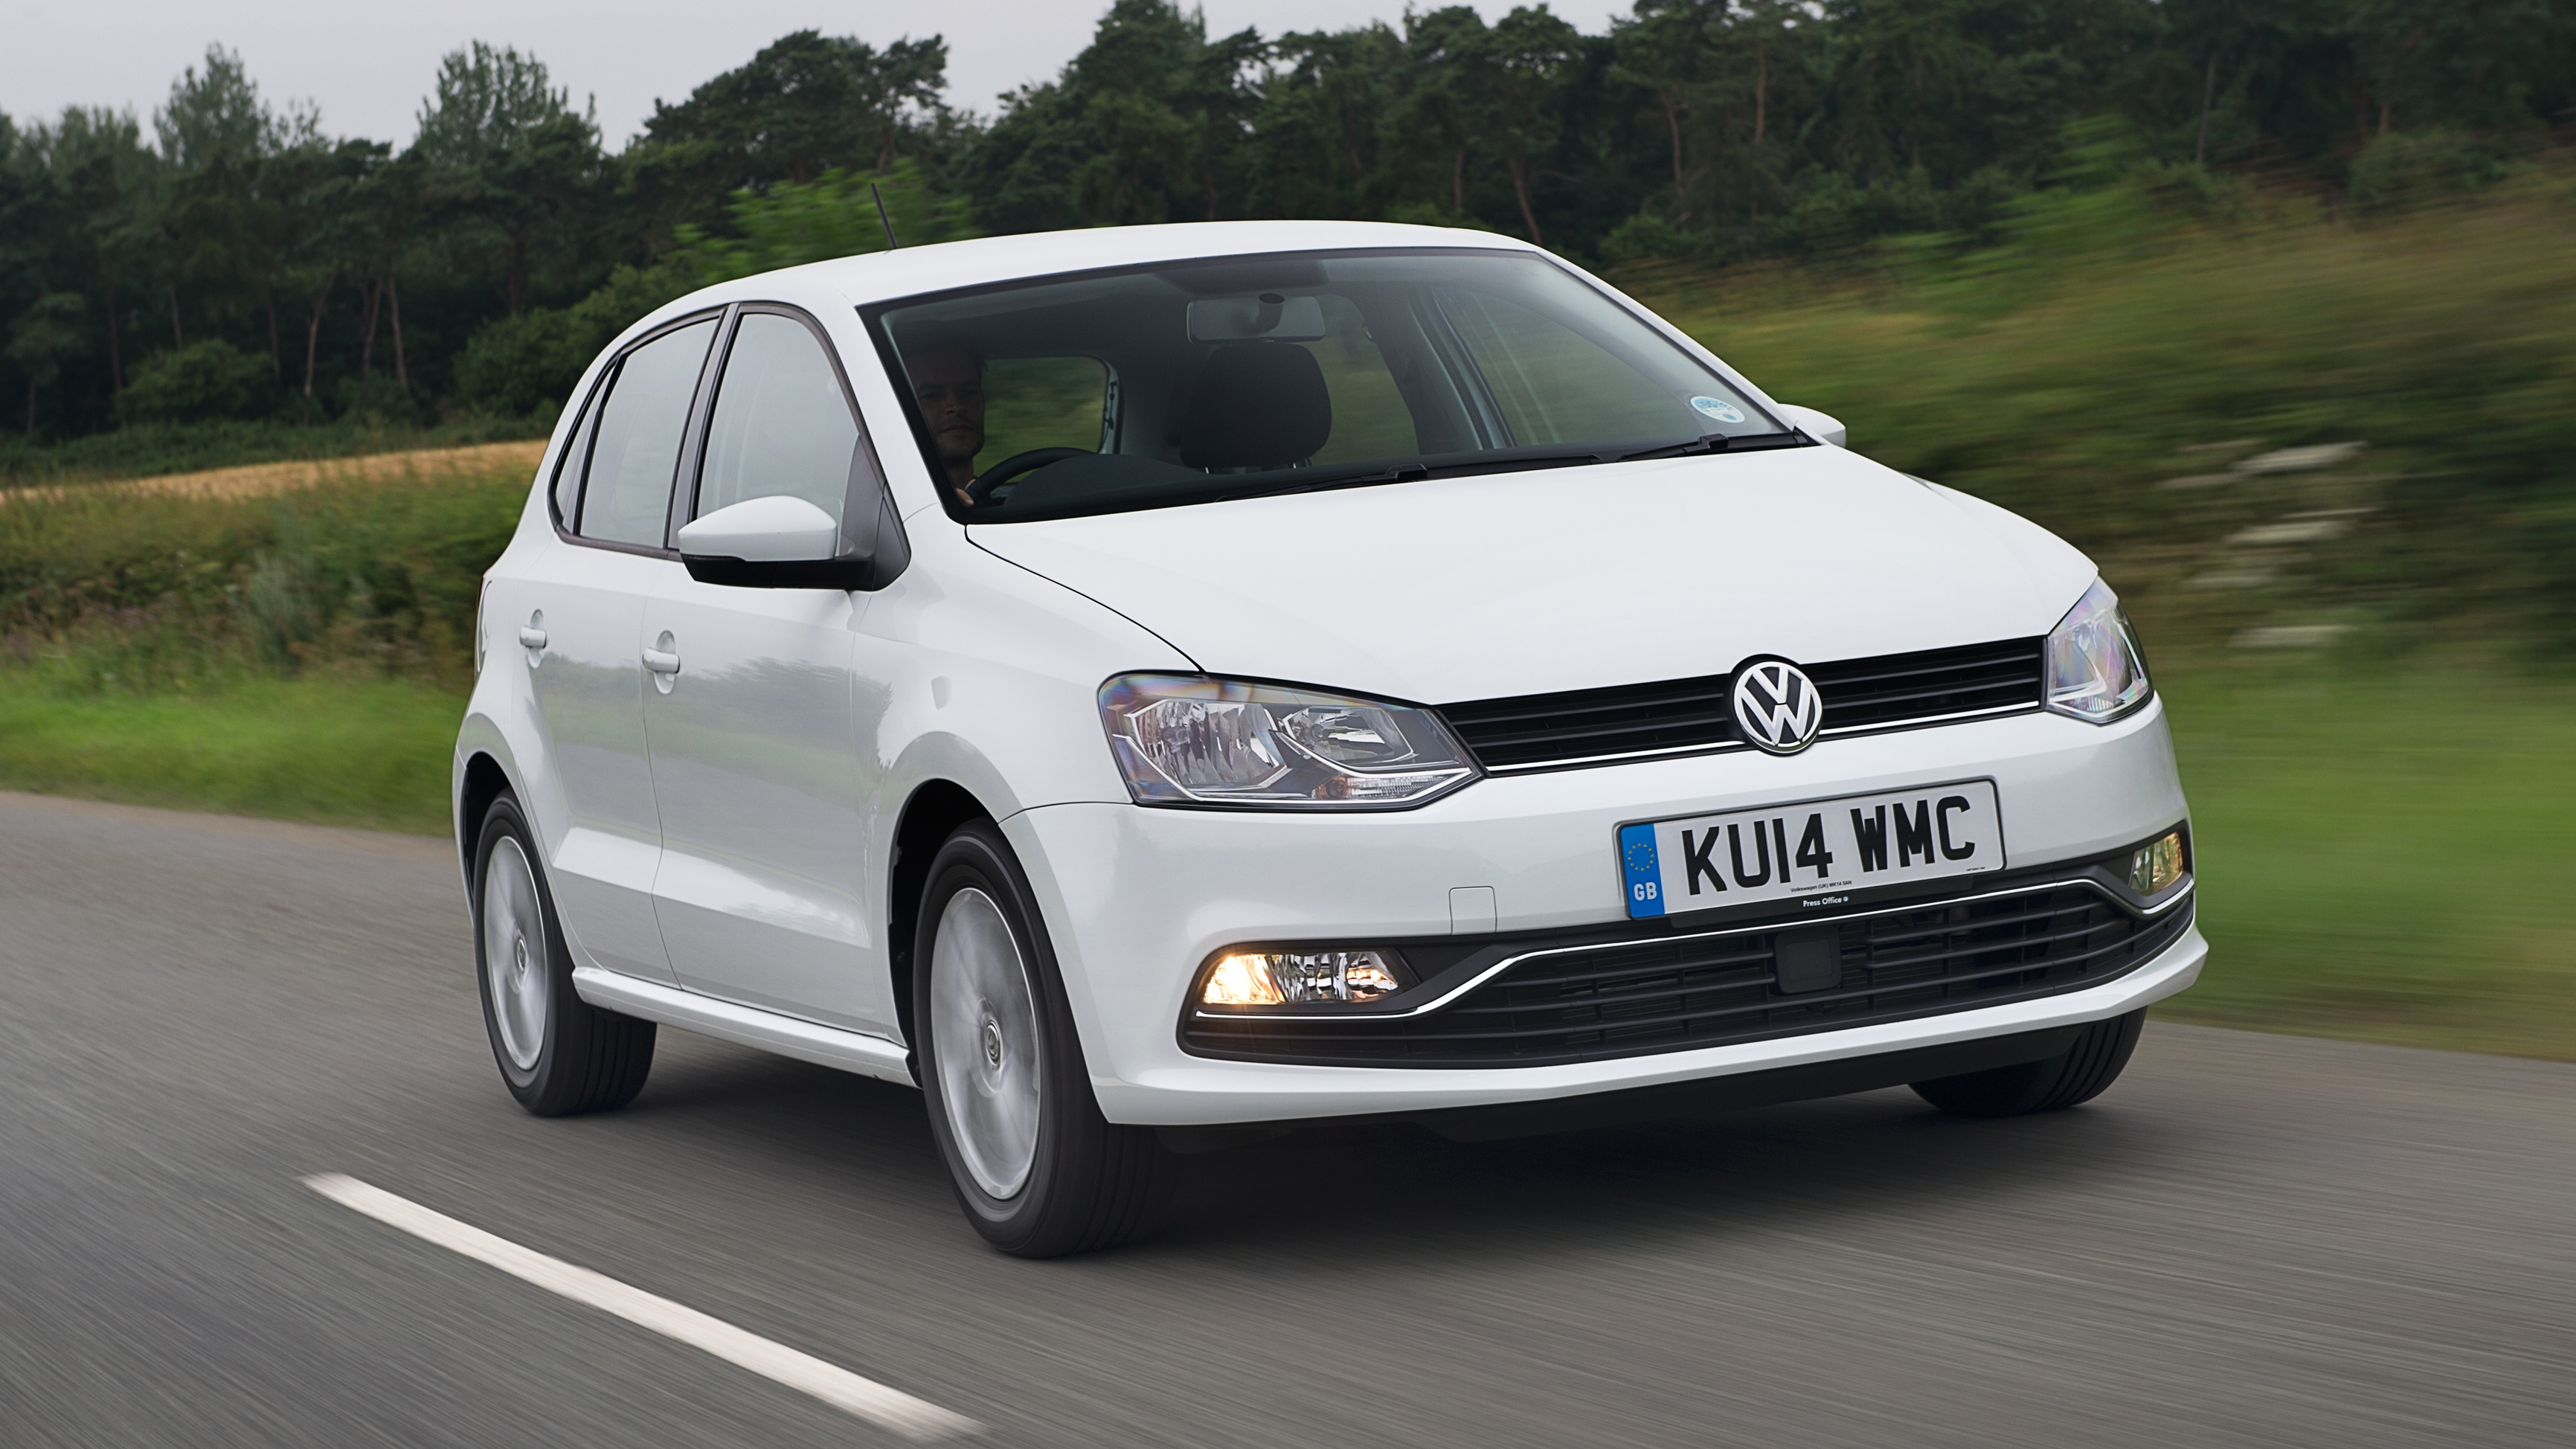 Volkswagen Polo Review And Buying Guide: Best Deals And